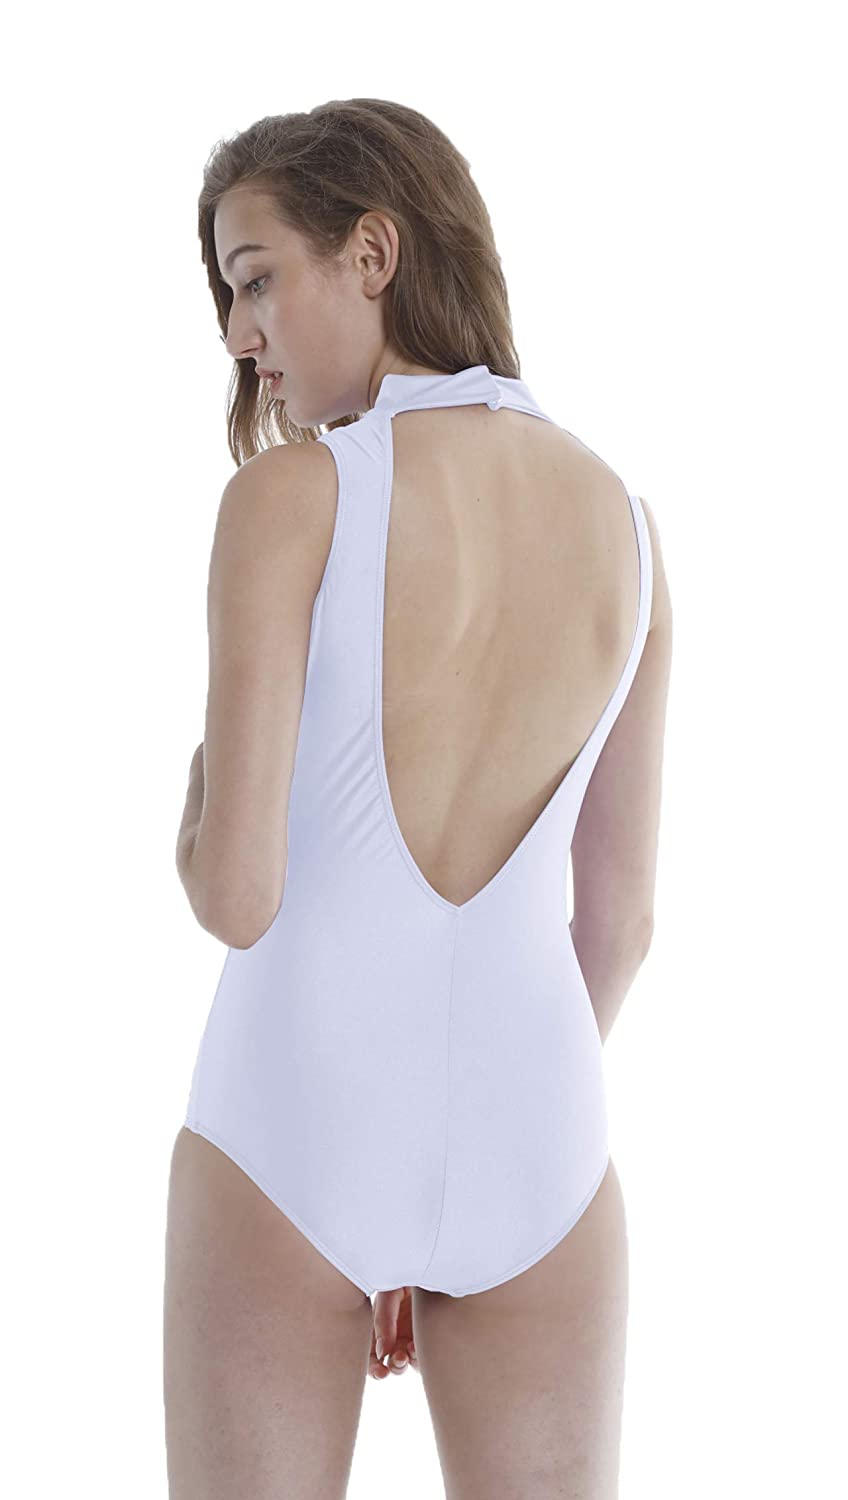 White Speerise Adults Backless Ballet Dance Leotard Turtle Neck Gymnastics Bodysuit